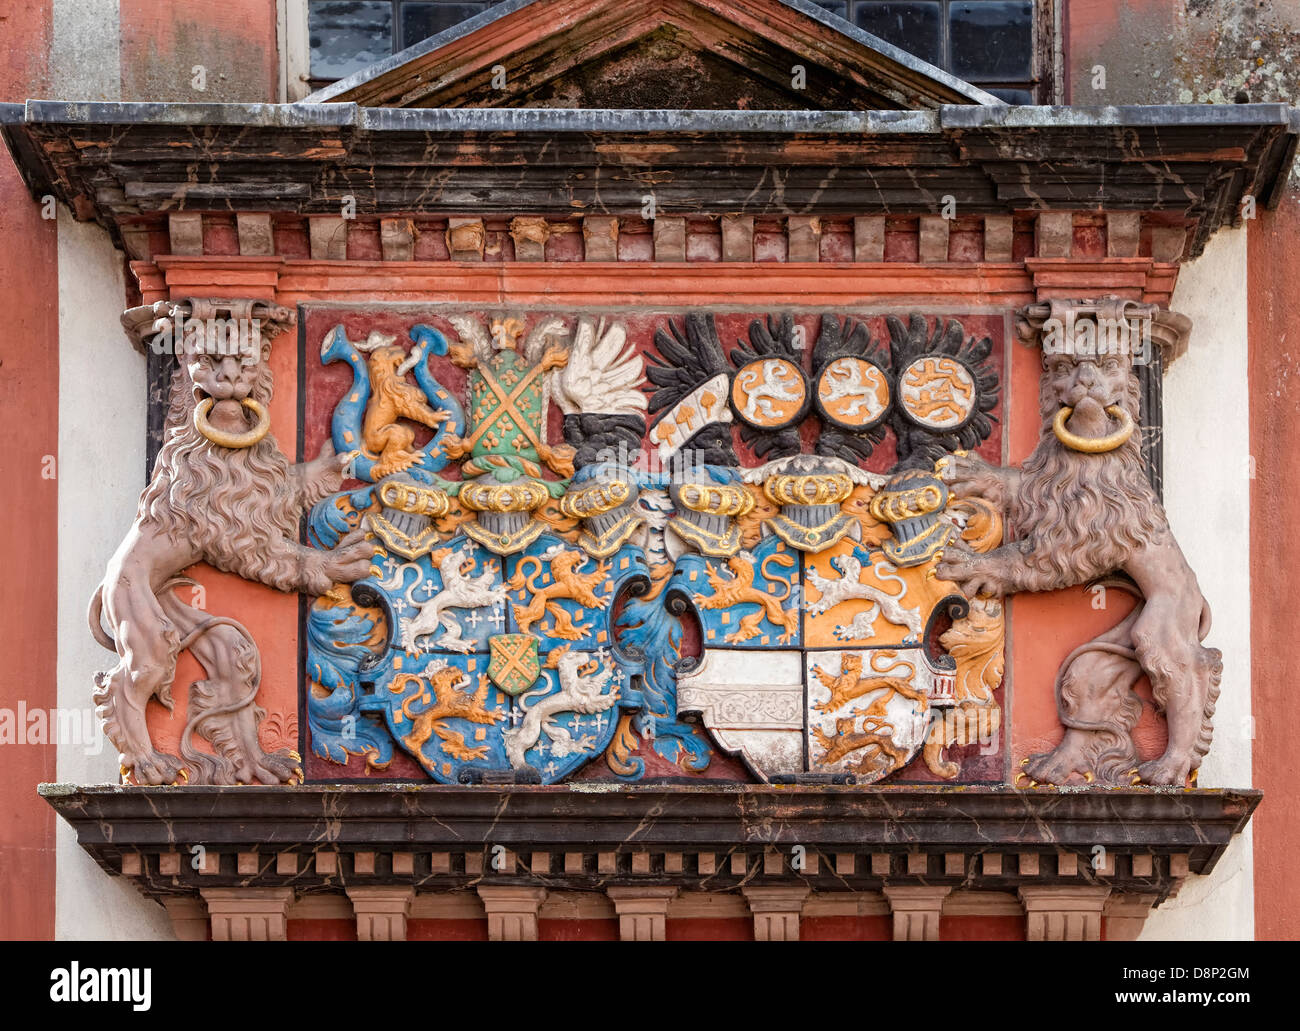 Coat of arms of alliance or marriage, Schloss Weilburg Castle, Weilburg an der Lahn, Hesse, Germany, Europe Stock Photo